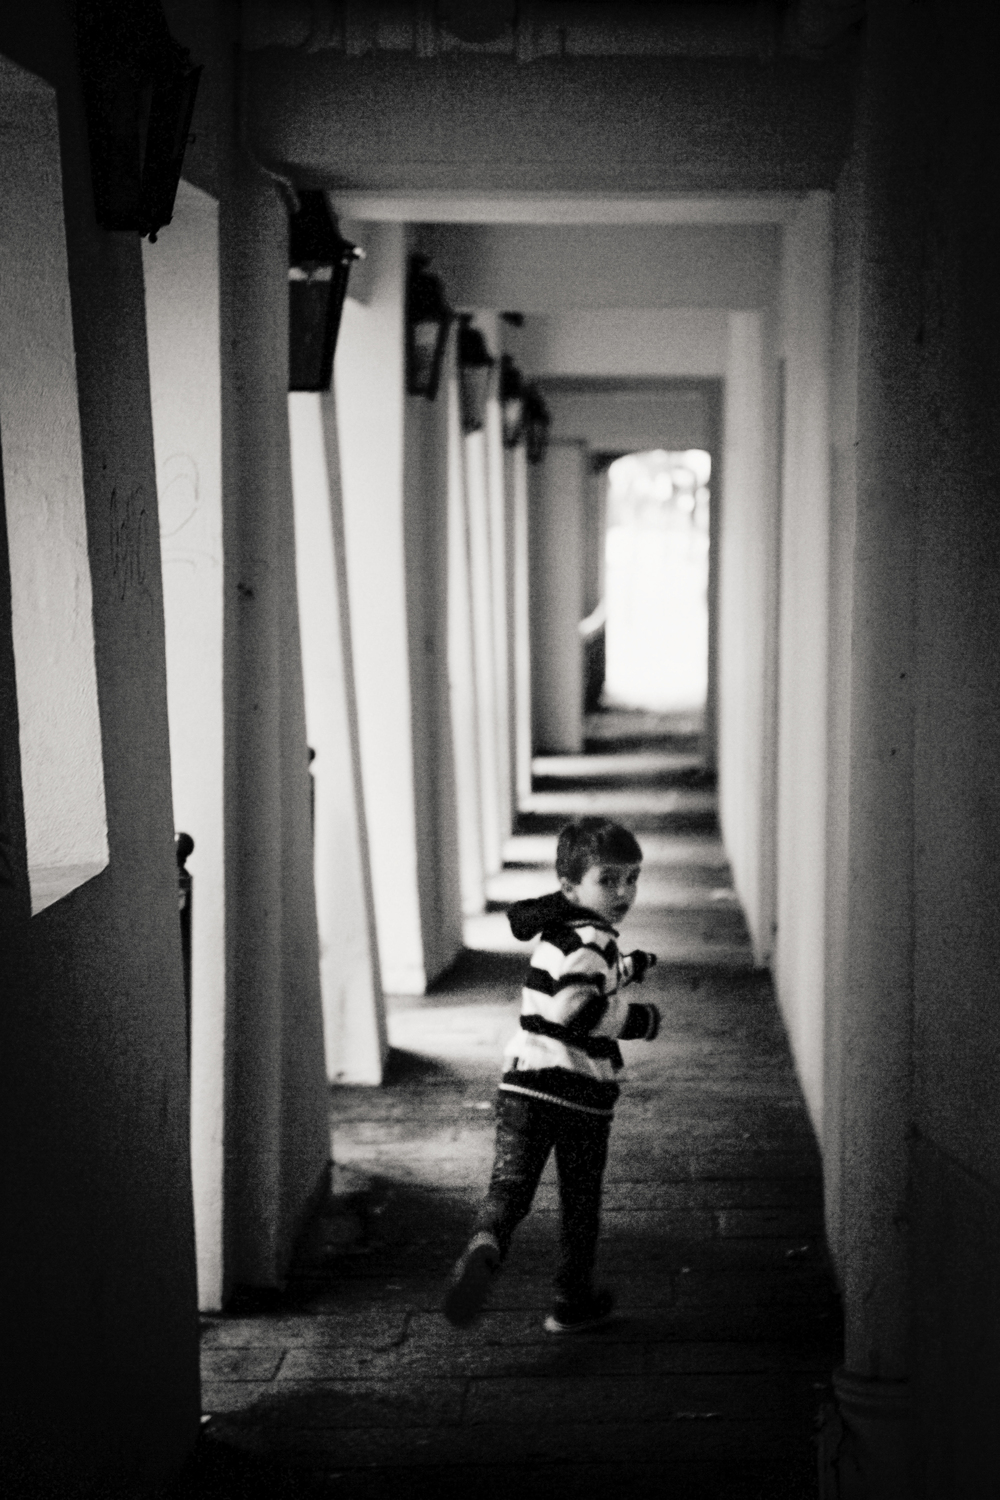 running boy, Paris 2014.